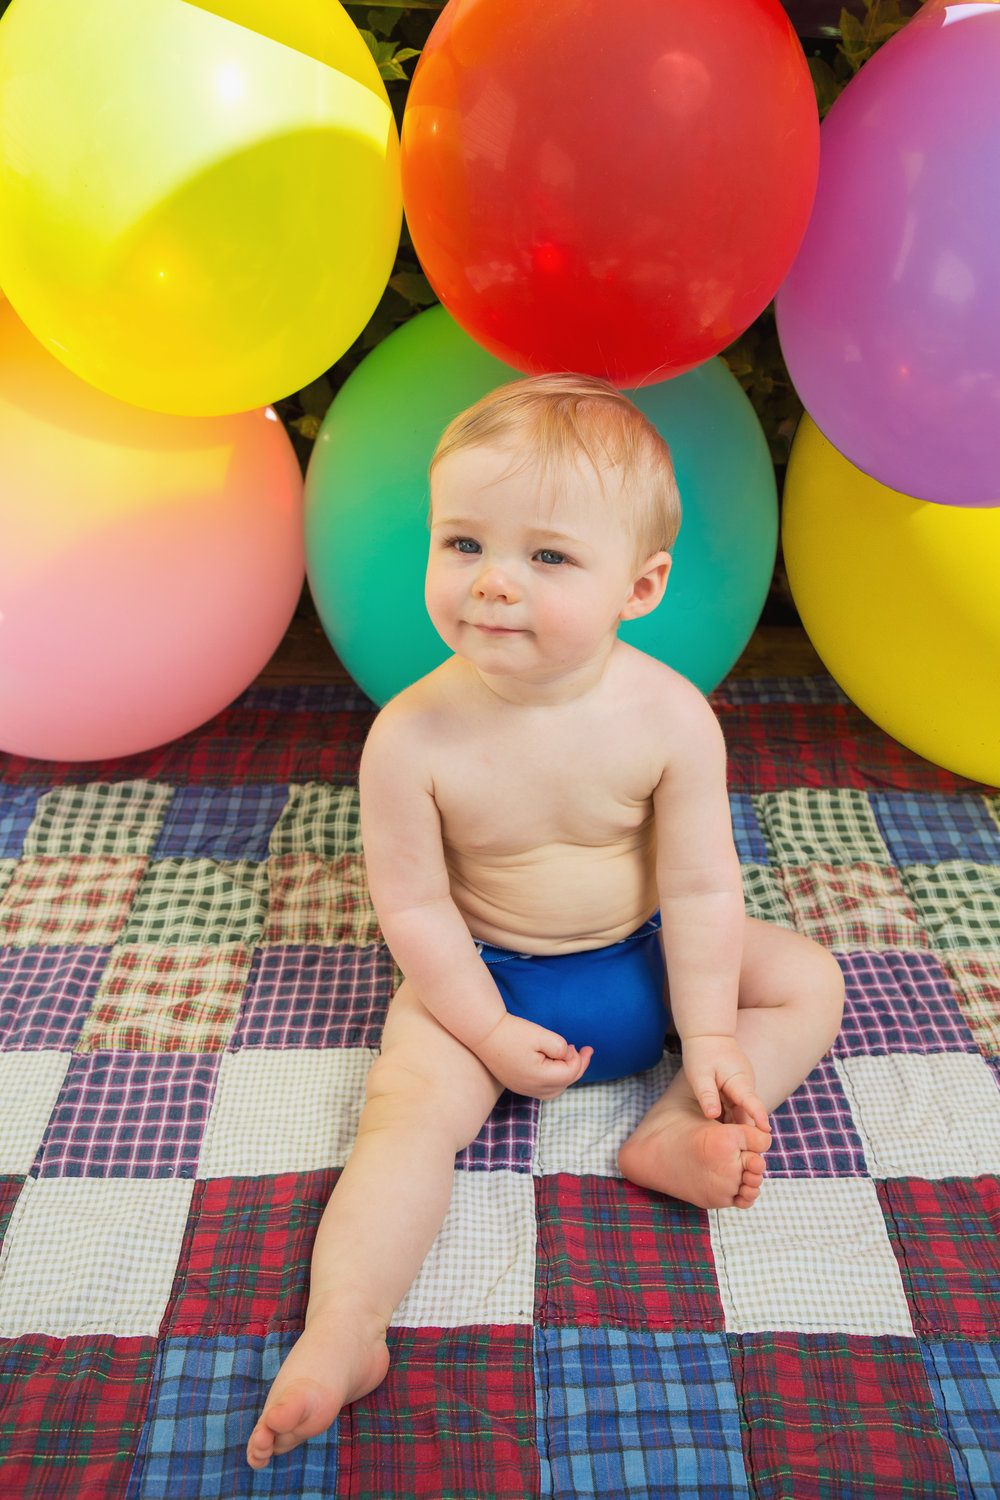 Theo_1stbday_07.jpg